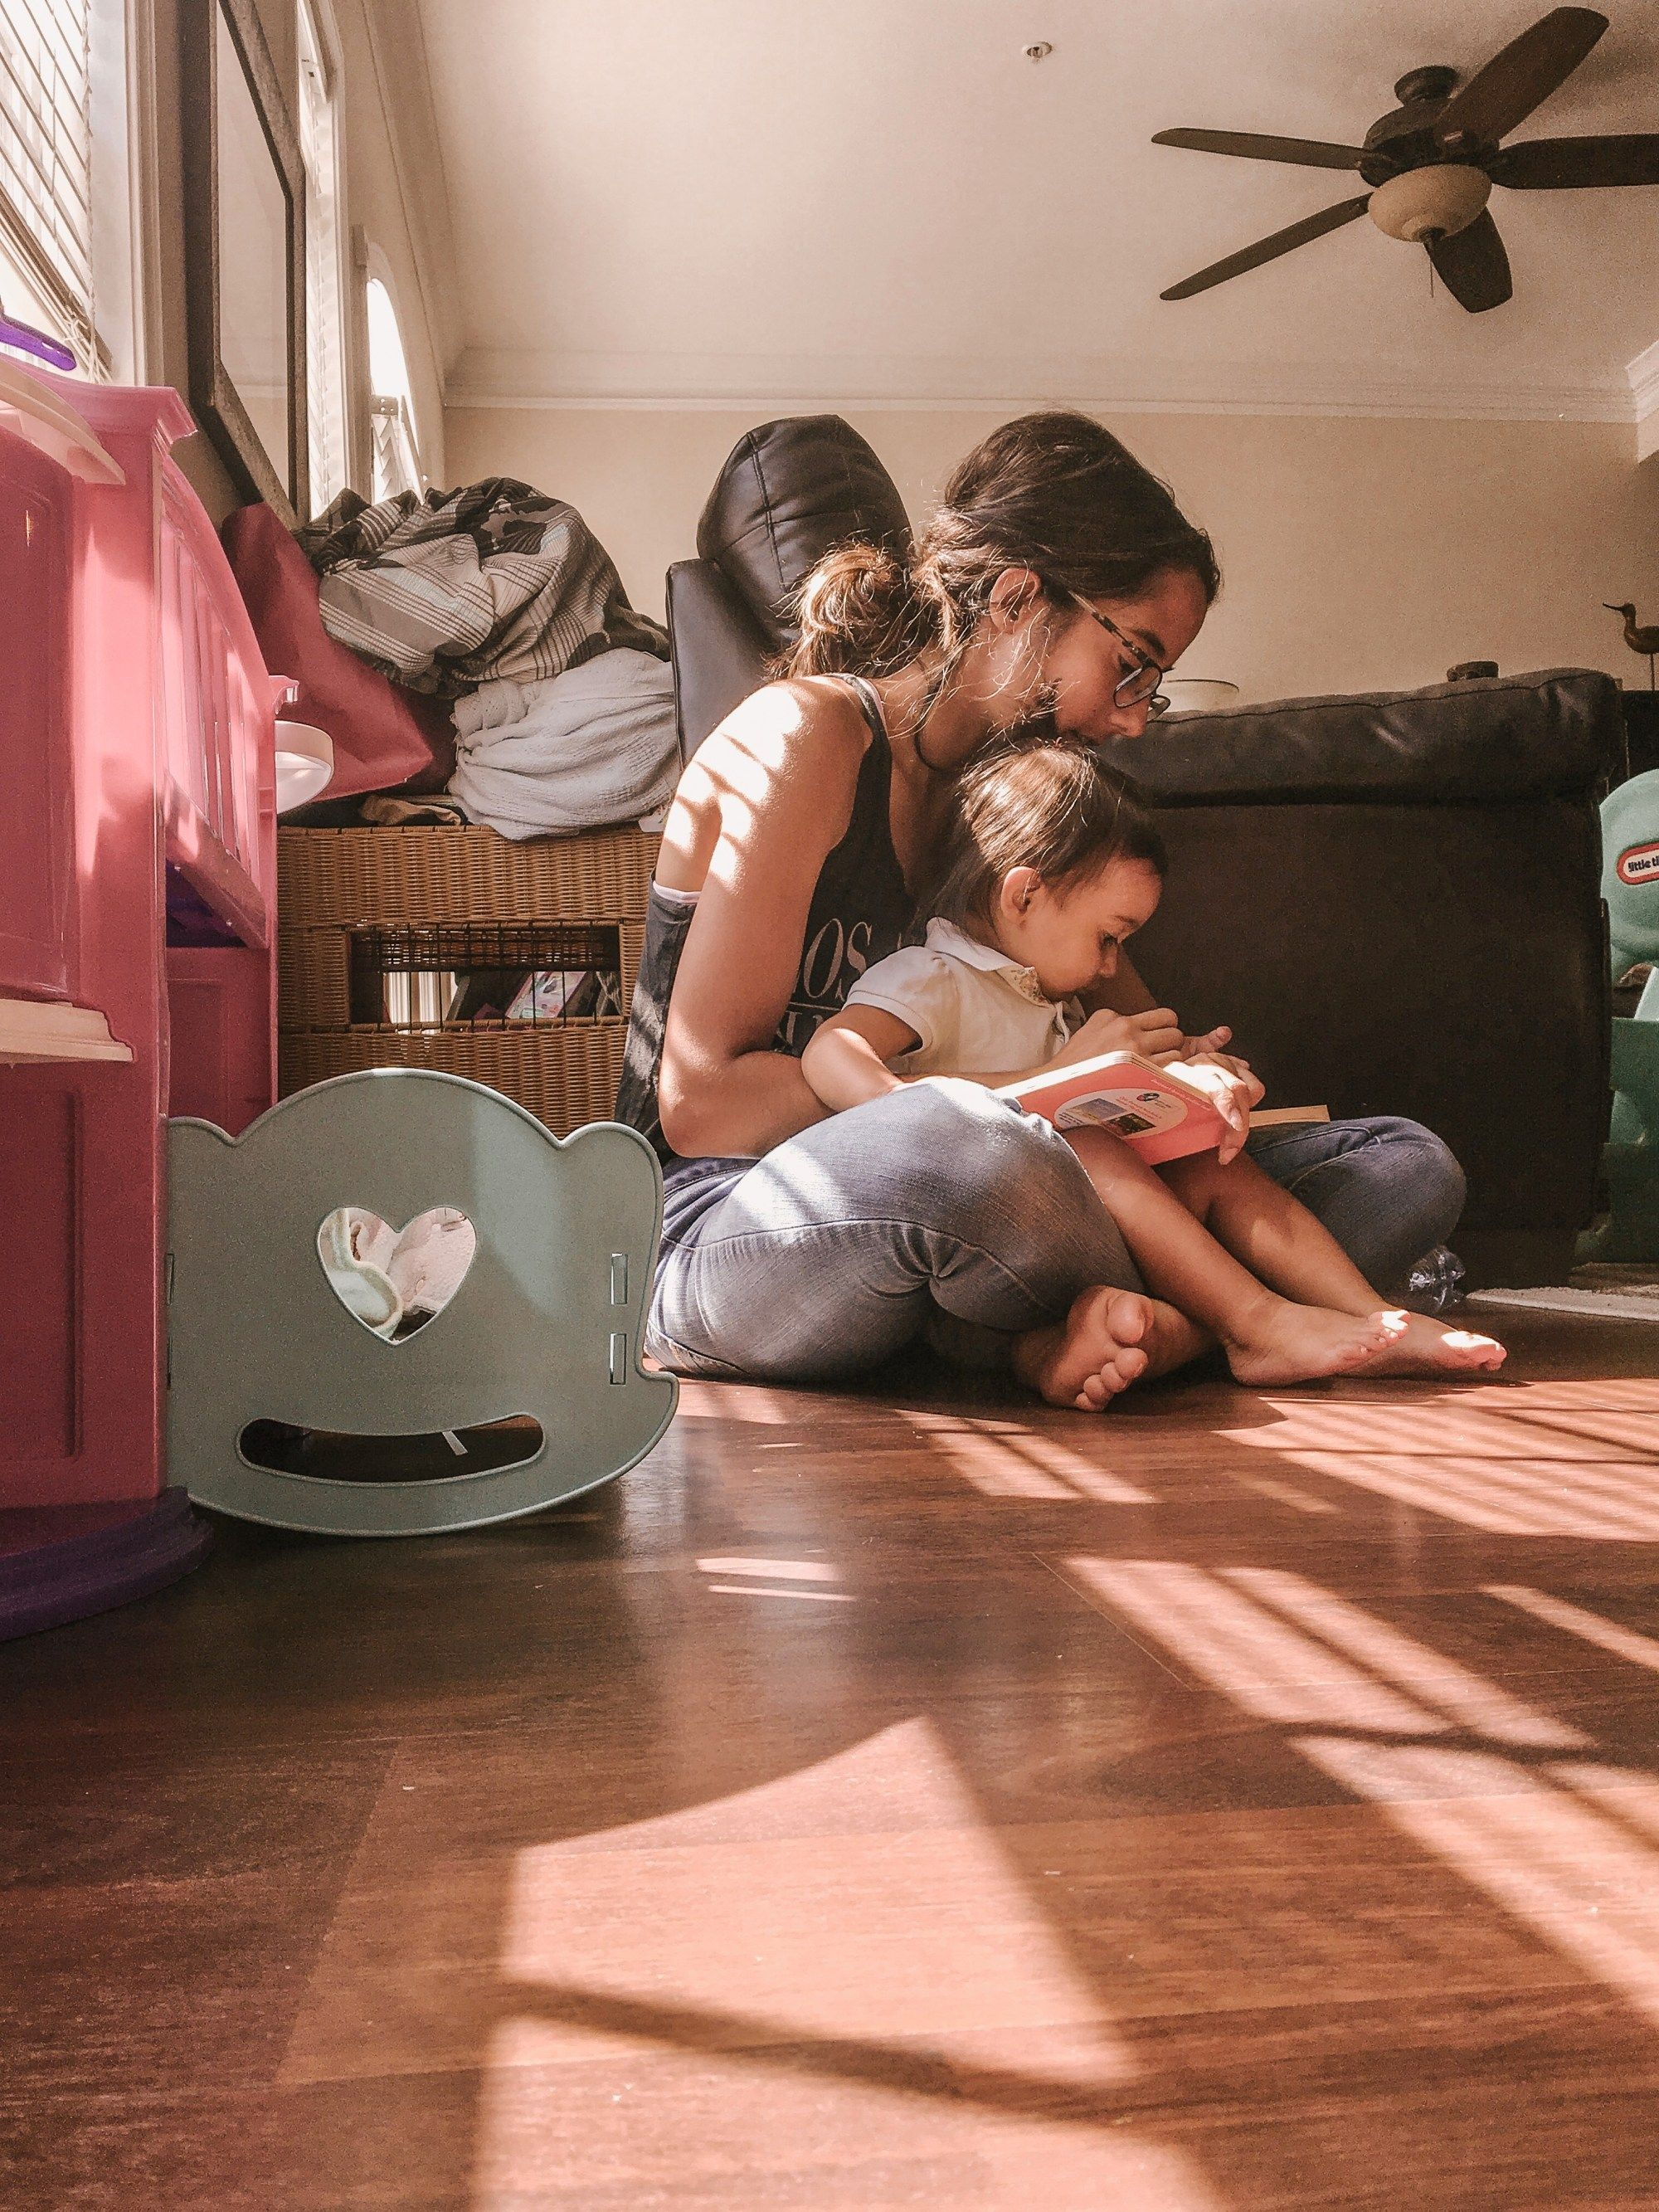 Dear Stay-at-Home Moms, Your Work Doesn't Go Unnoticed #stayathome